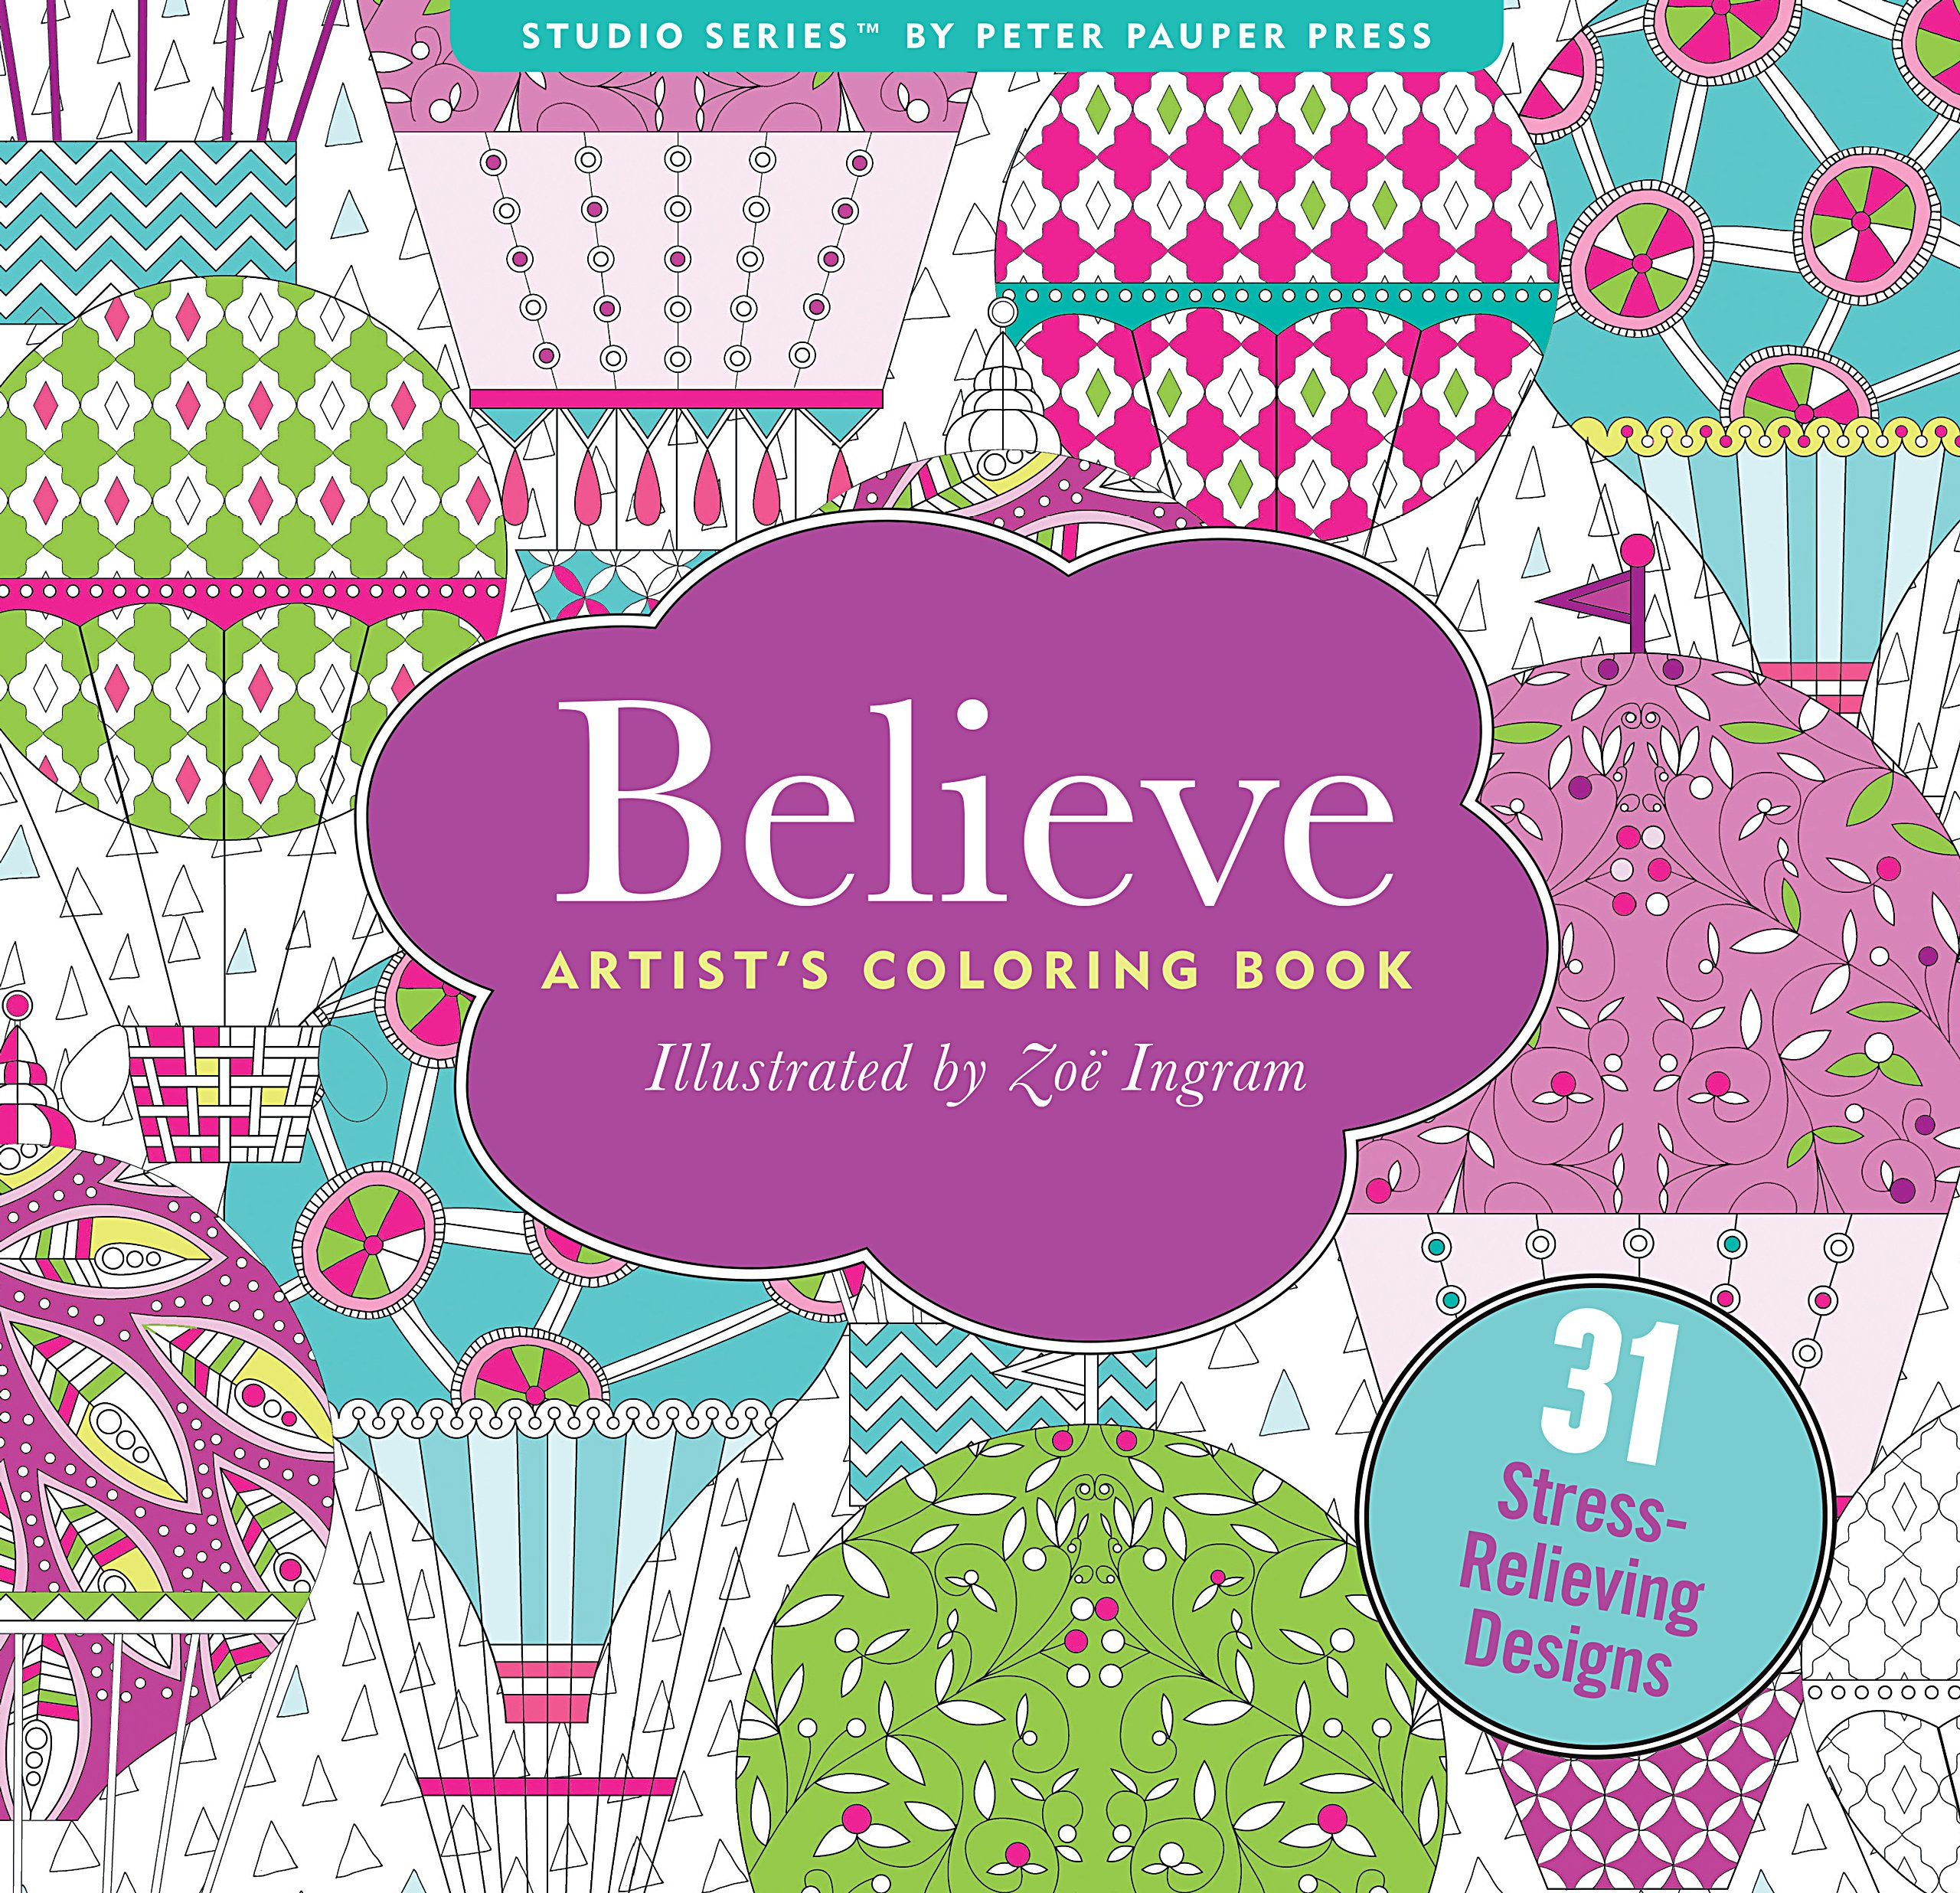 Believe Adult Coloring Book (31 stress-relieving designs) (Studio ...